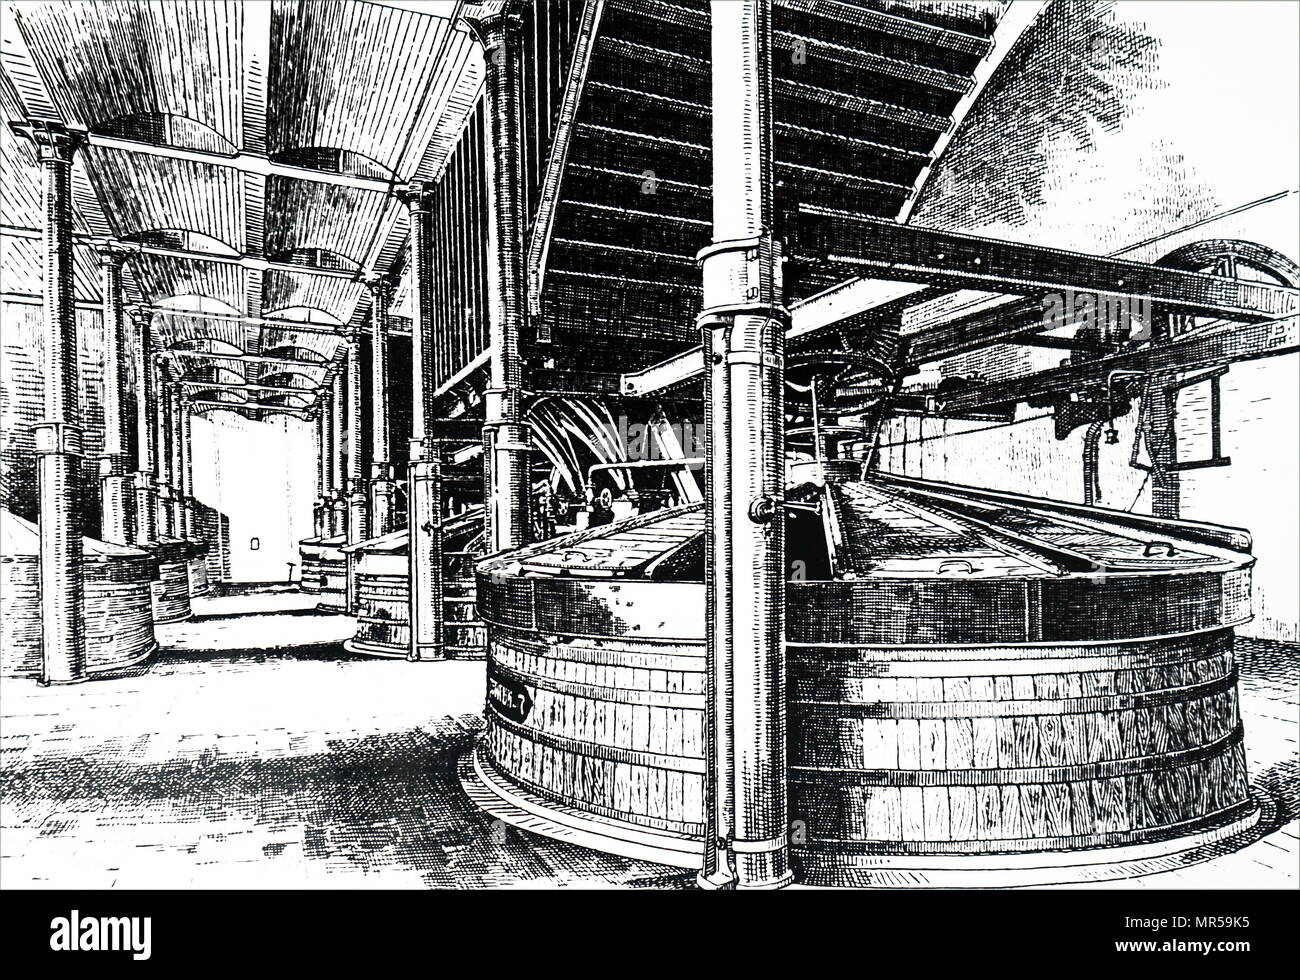 Engraving a scene from within the WM Younger & Co., Holyrood Brewery - the mashing stage, where malt and water were thoroughly mixed together. Dated 19th century Stock Photo